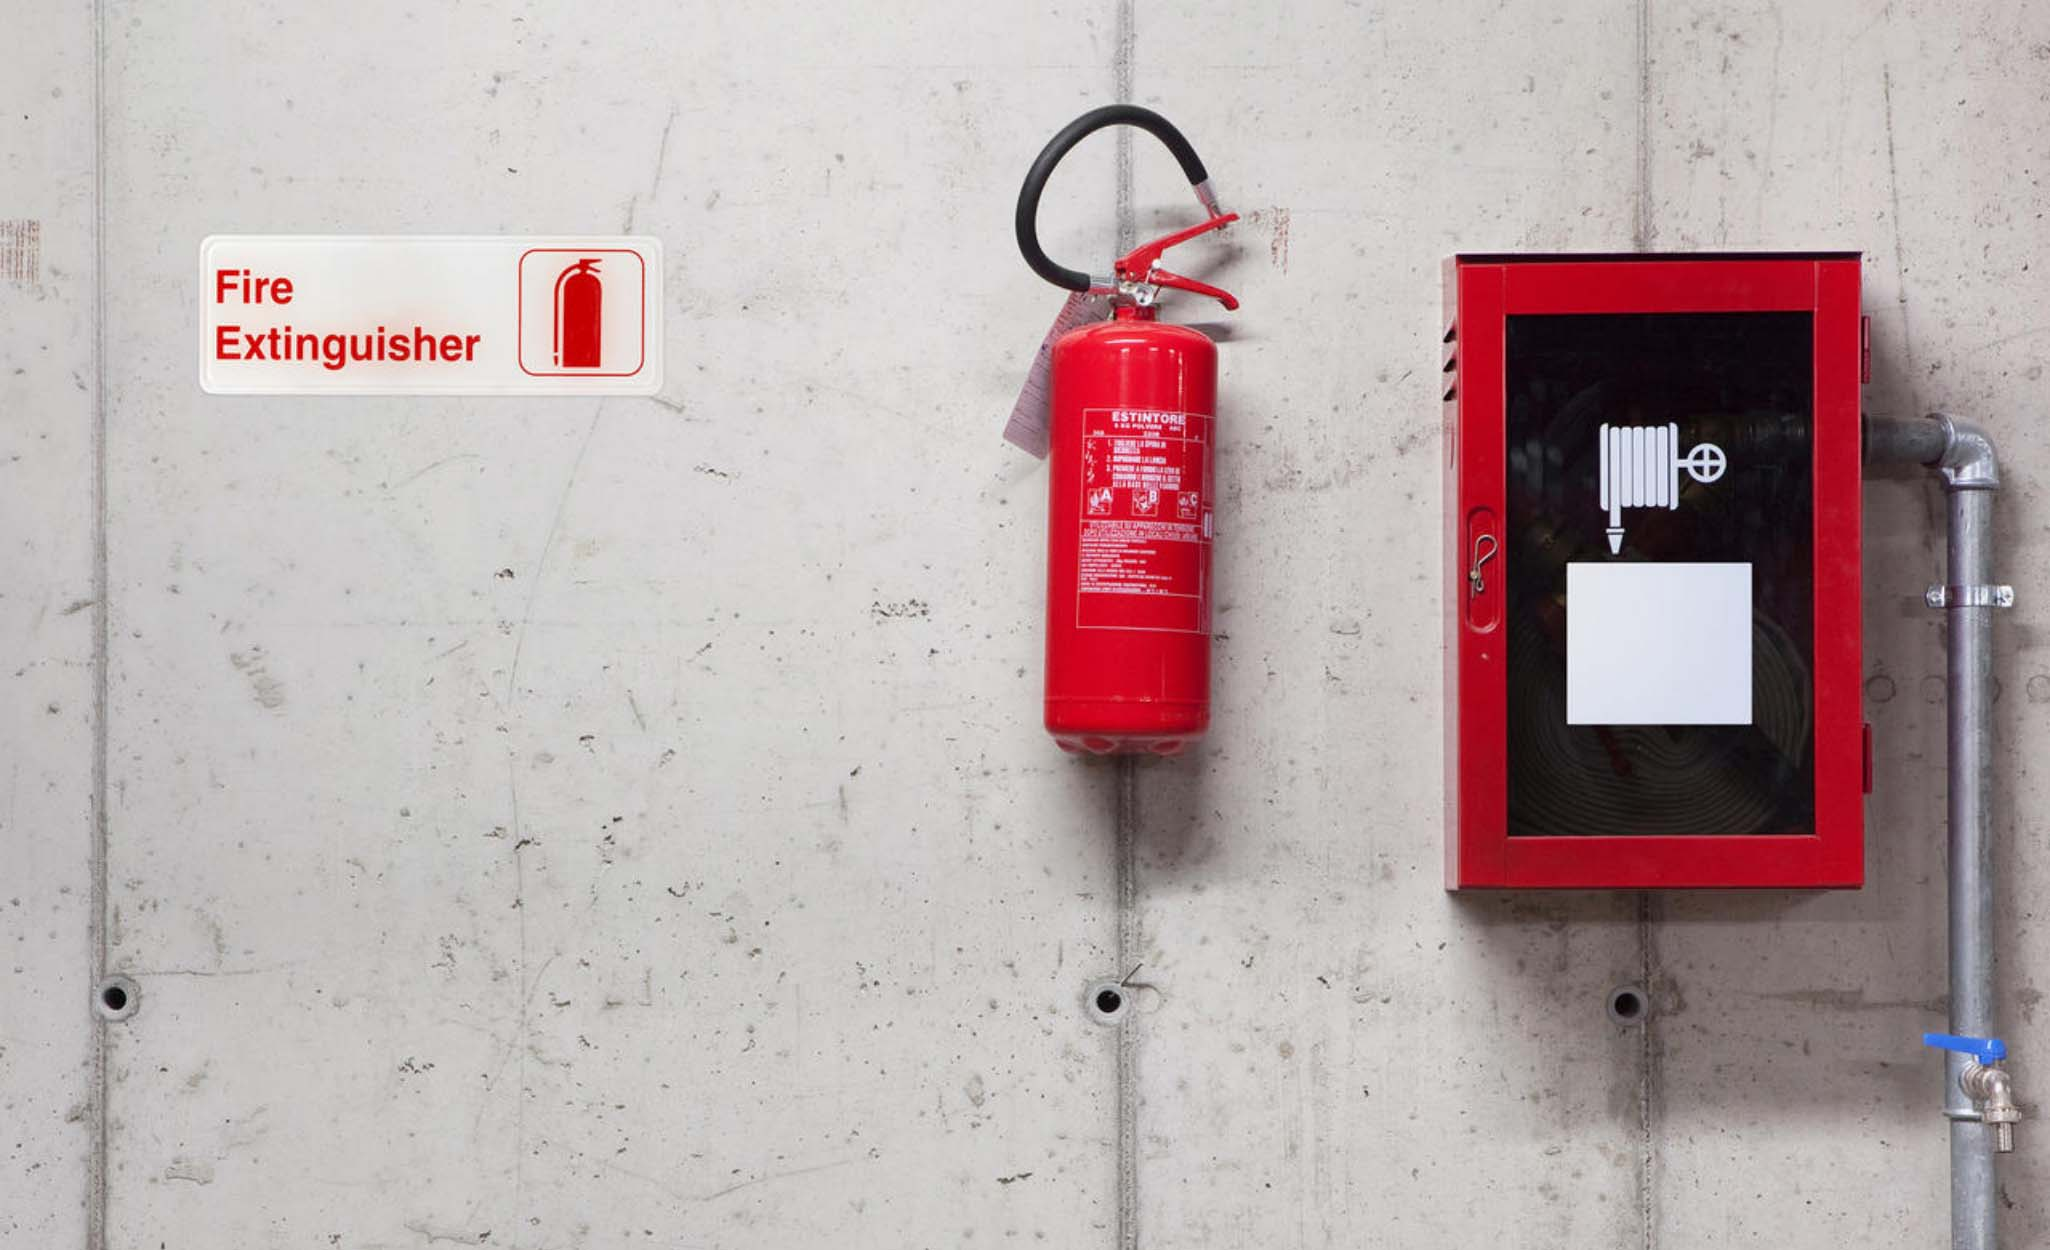 A fire extinguisher and signage hang on a wall.